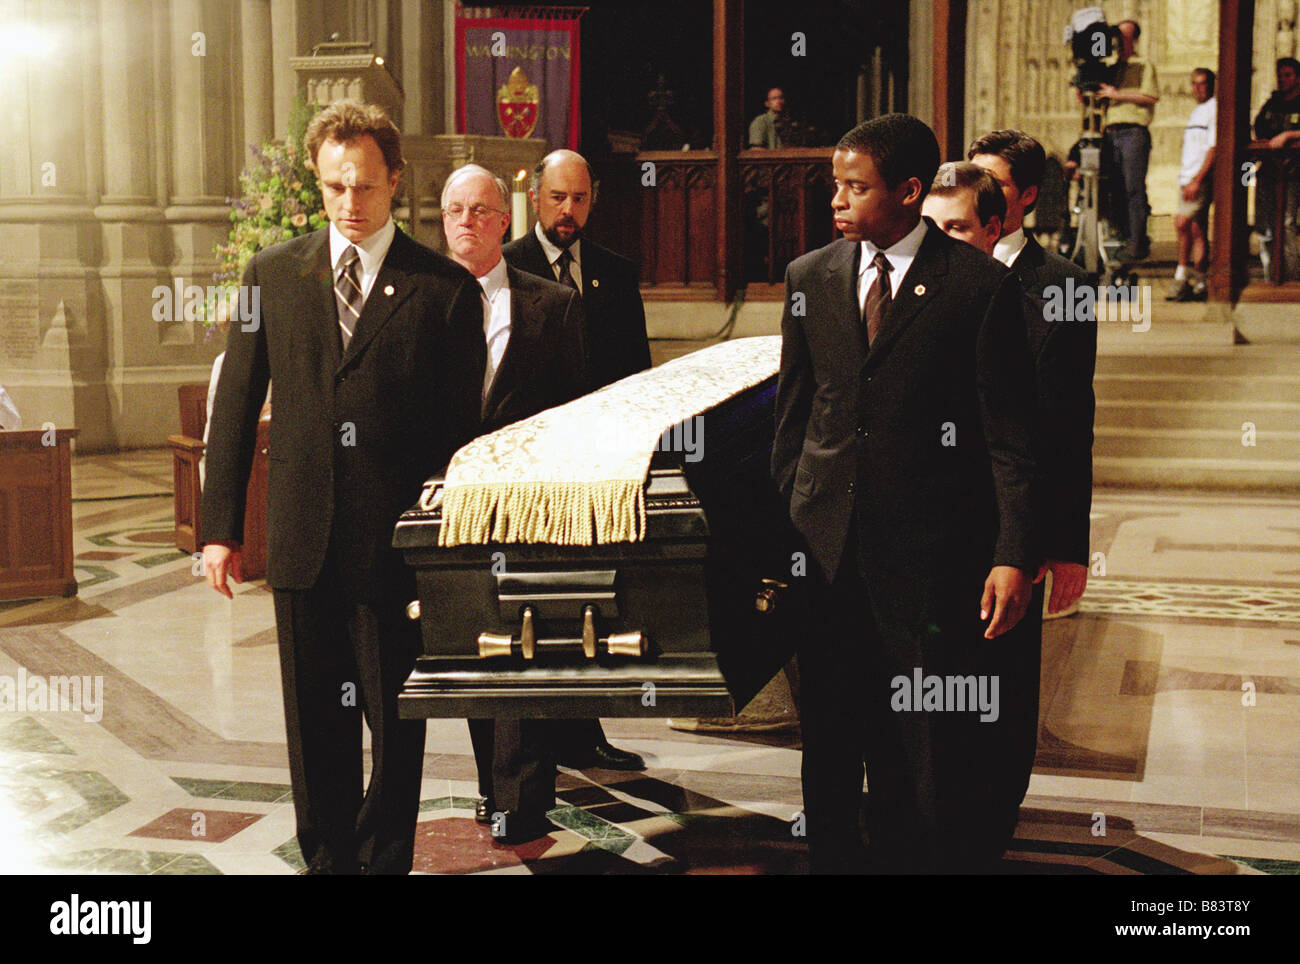 The West Wing Tv Serie 1999 2006 Usa Bradley Whitford Dulé Hill